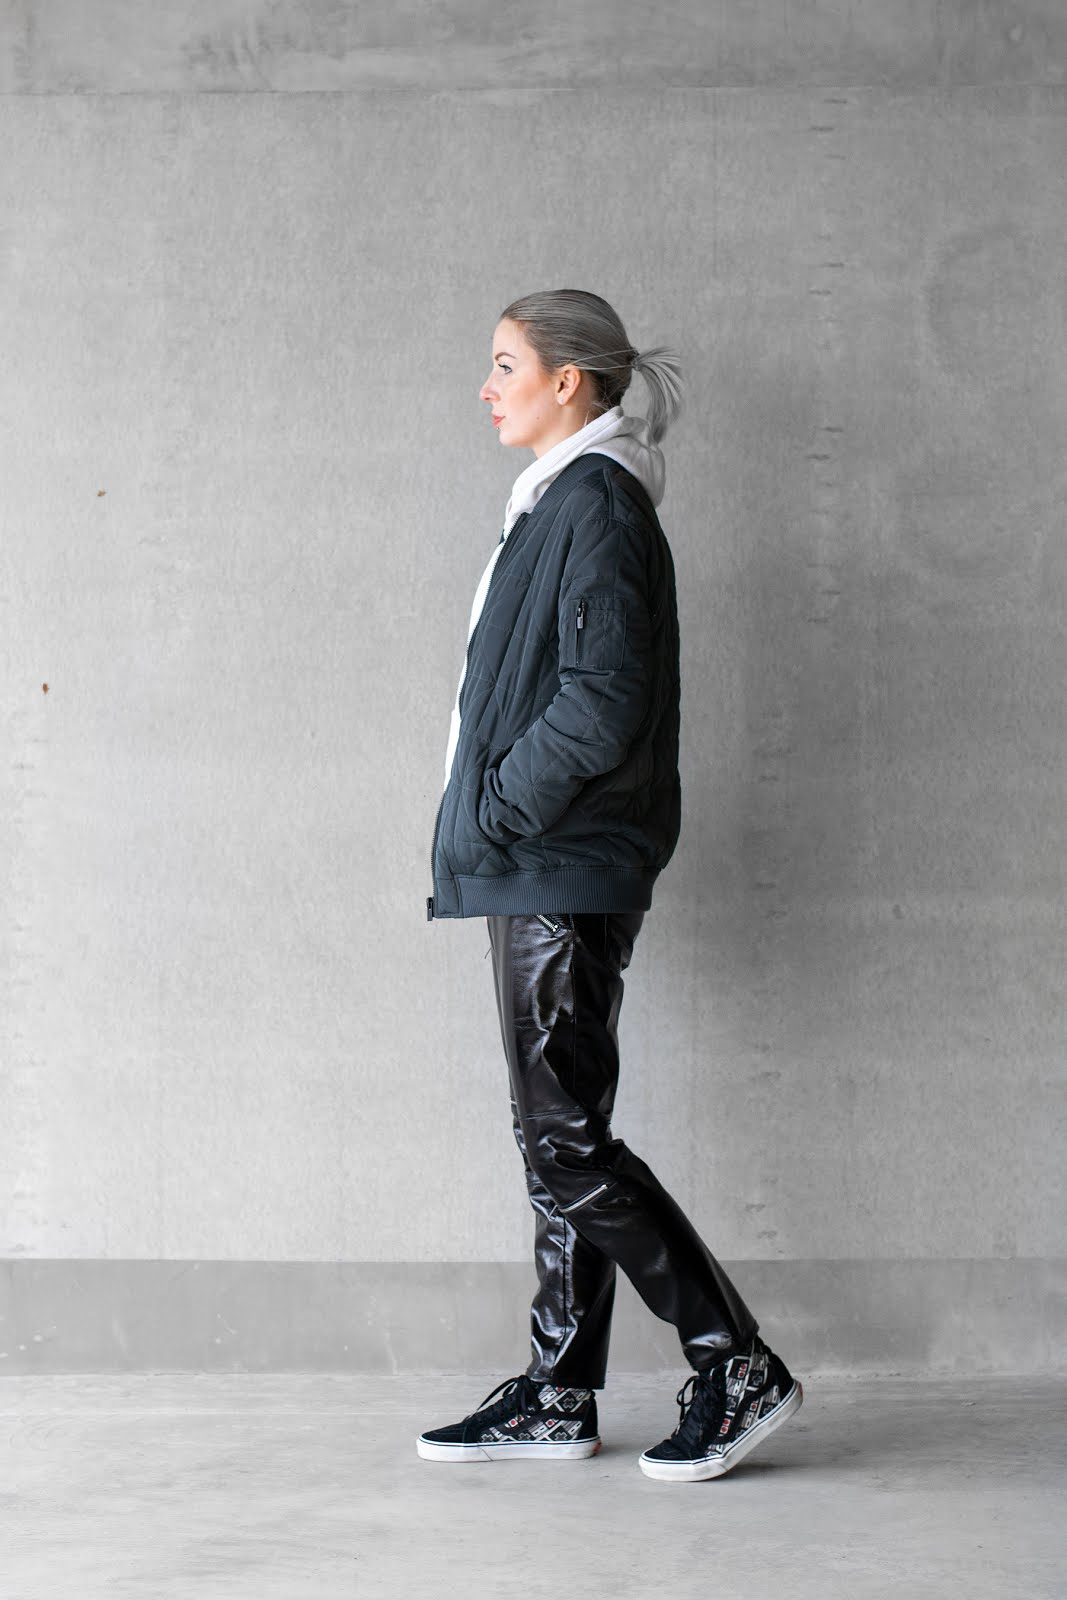 The sting bomberjacket dark grey, h&m studio white hoodie 2016, patent, high shine trousers pants zara, vans super nintendo sneakers, minimal outfit, street style